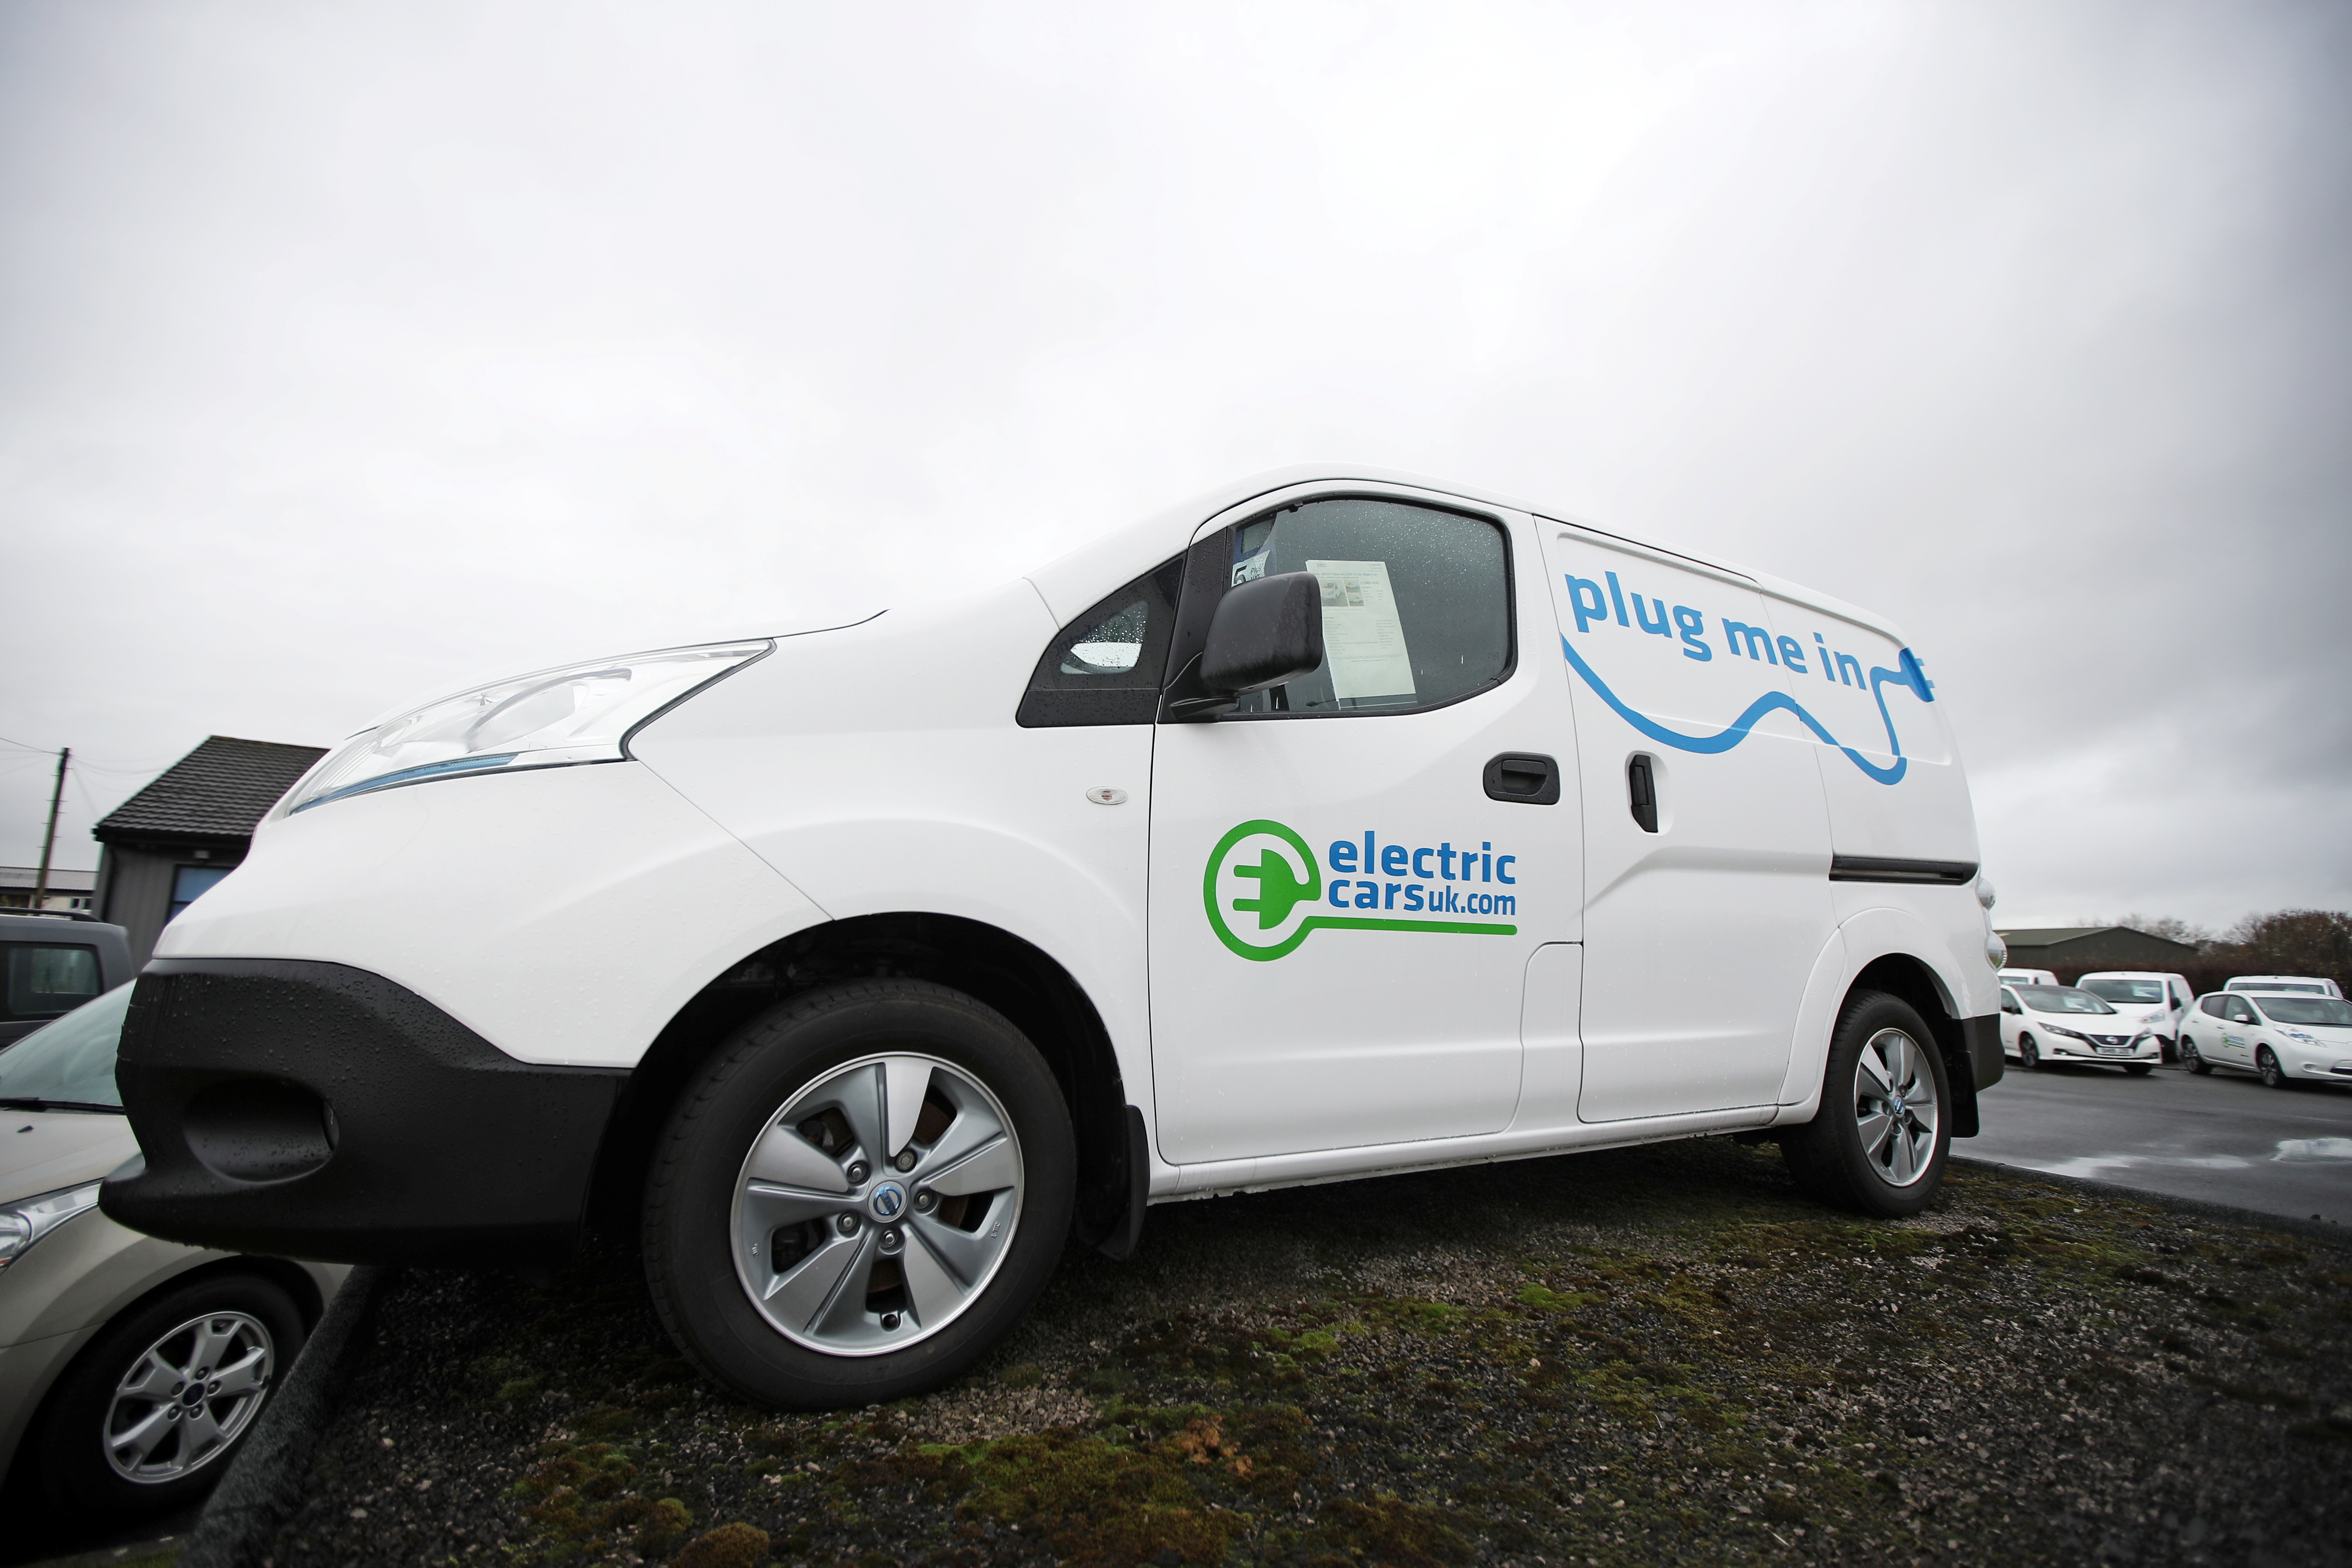 a picture of an electric vehicle